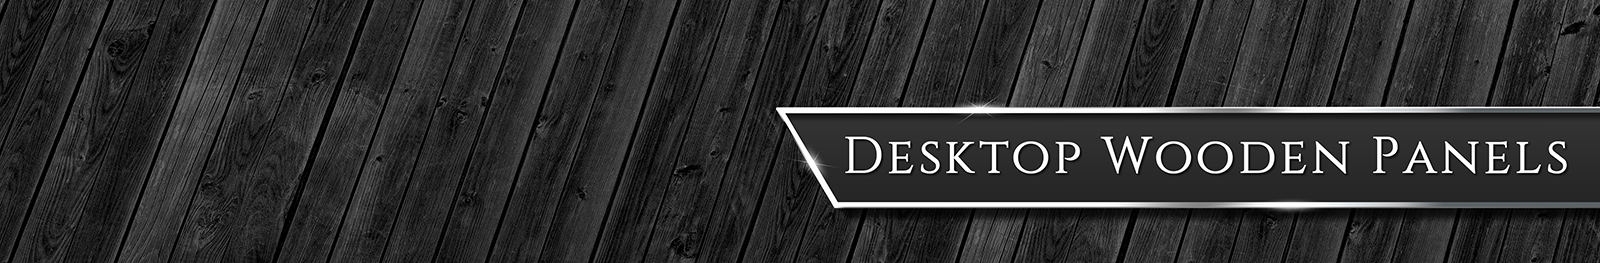 Desktop Wooden Panels Page Banner